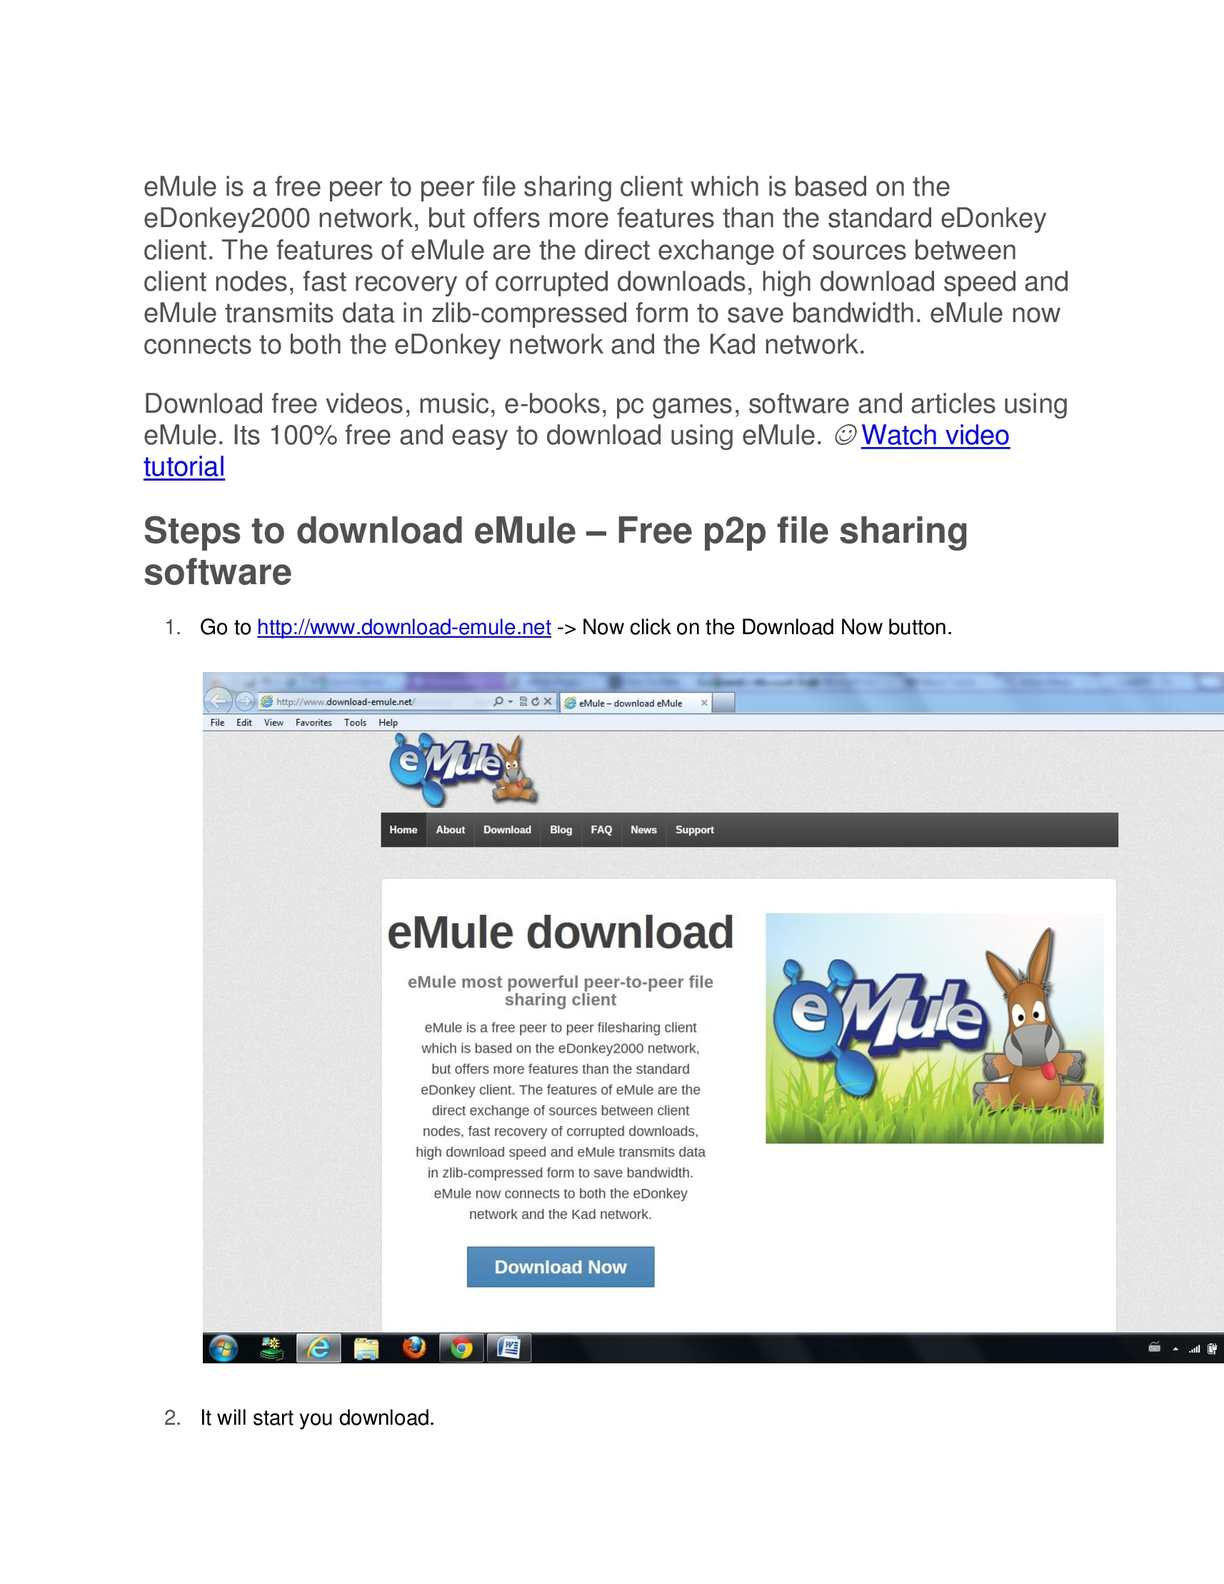 emule kad network not connecting